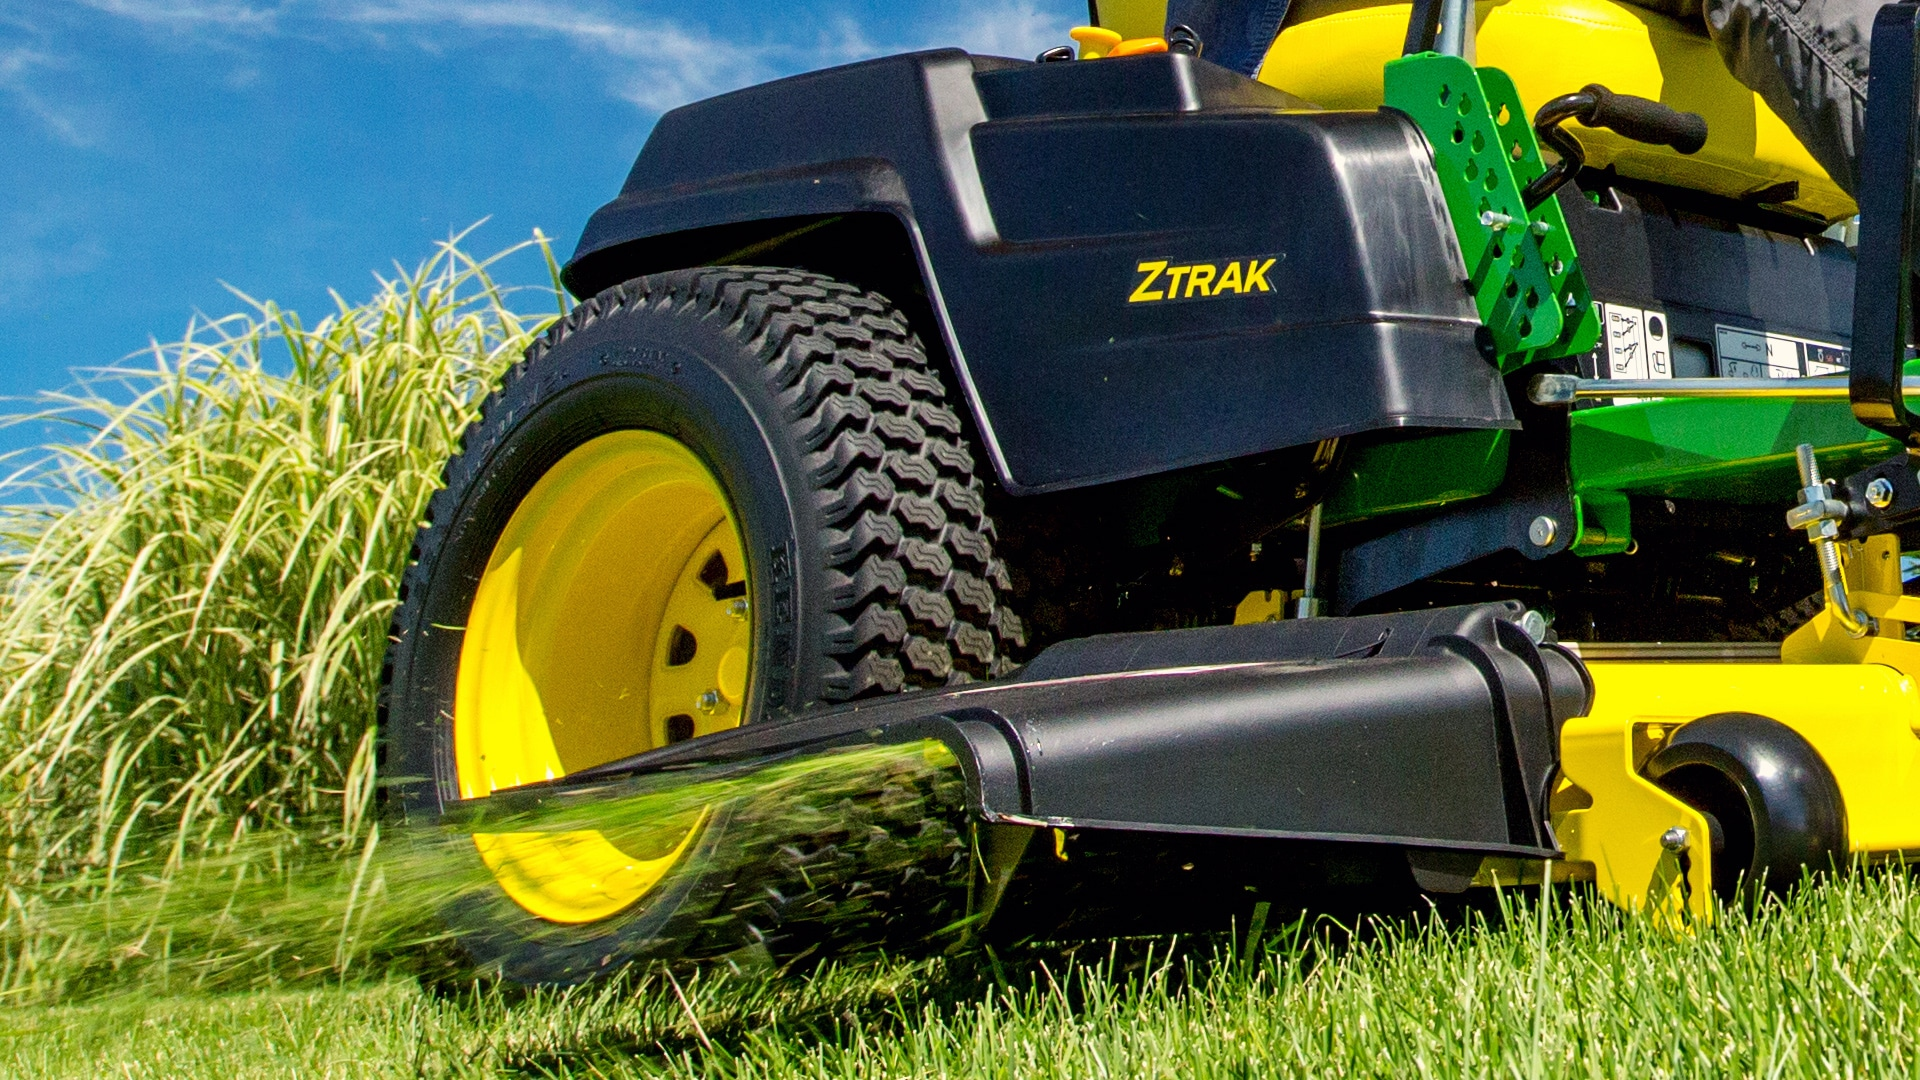 Riding Lawn Mower Attachments | John Deere US